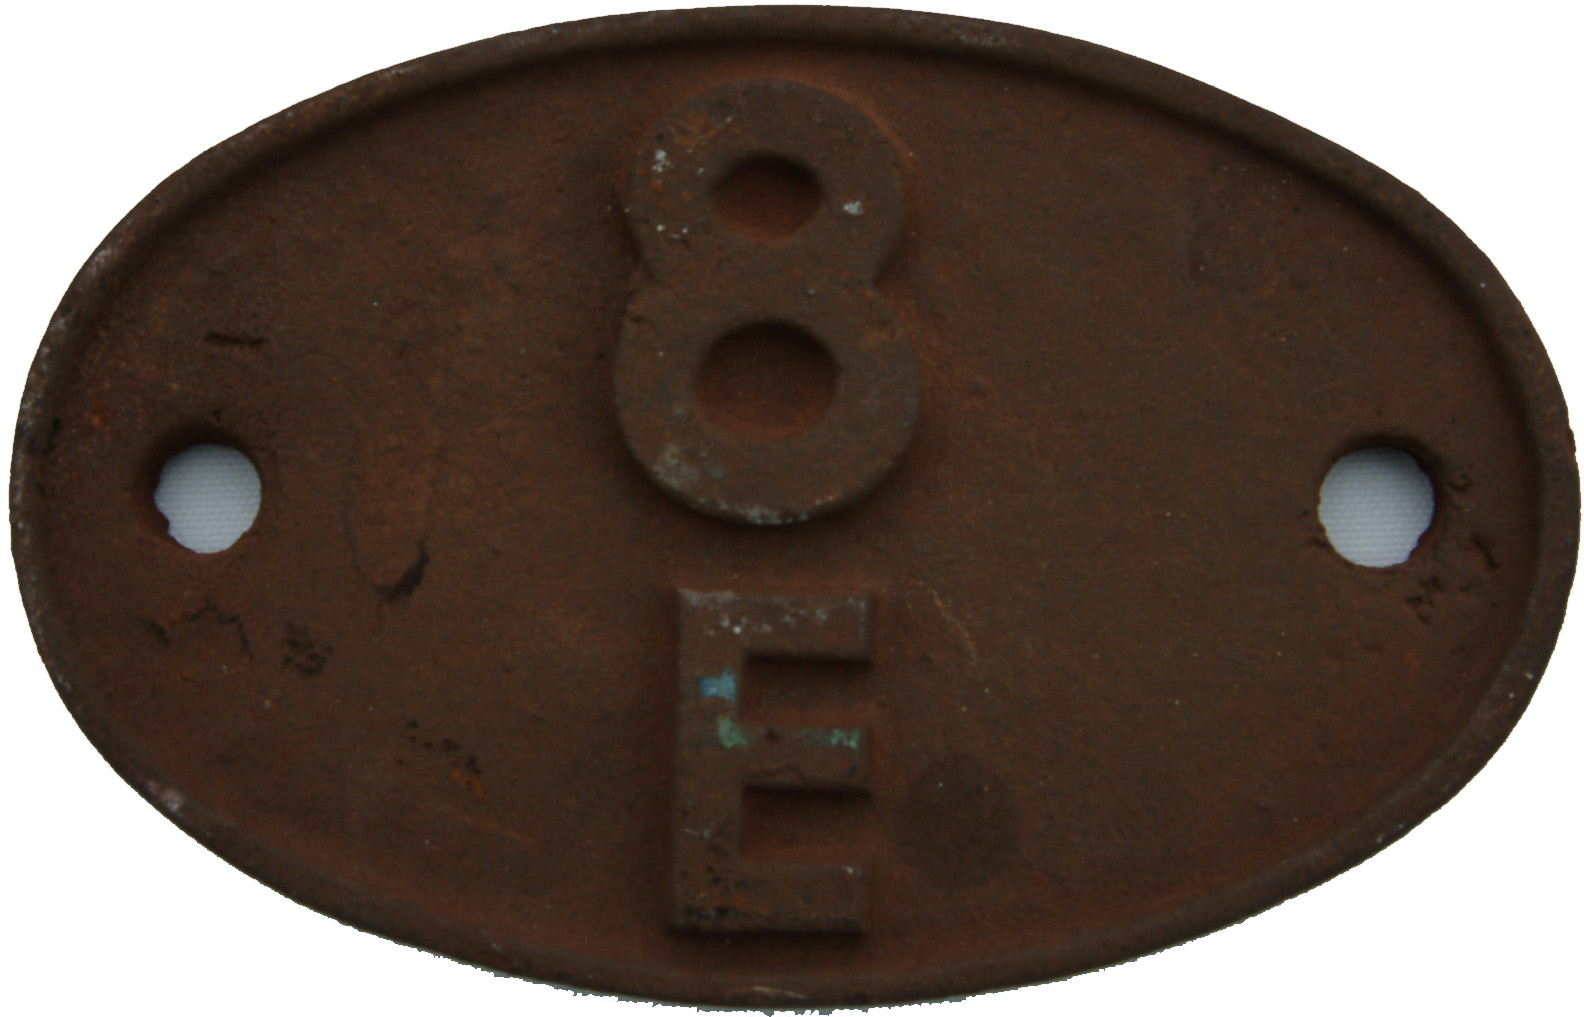 Shedplate 8e, Brunswick From May 1950 Until April